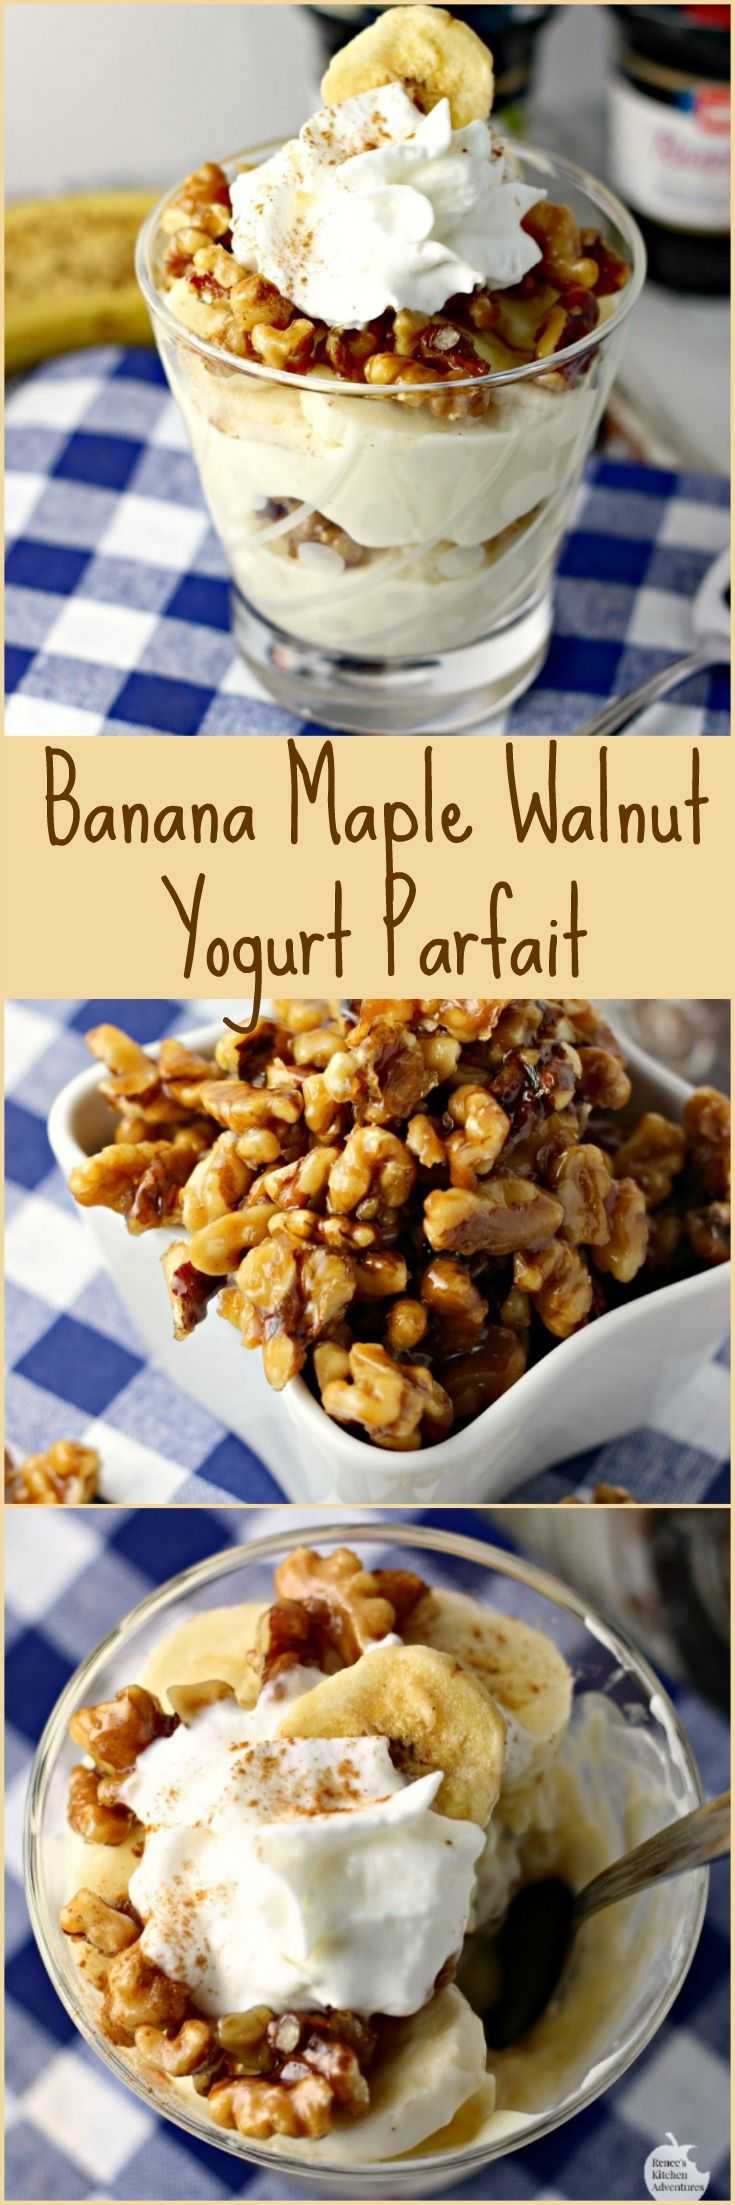 Banana Maple Walnut Yogurt Parfait | Kitchen Adventures:  Wholesome treat full of fresh bananas, vanilla bean yogurt and Maple Walnuts! #MullerMoment #ad